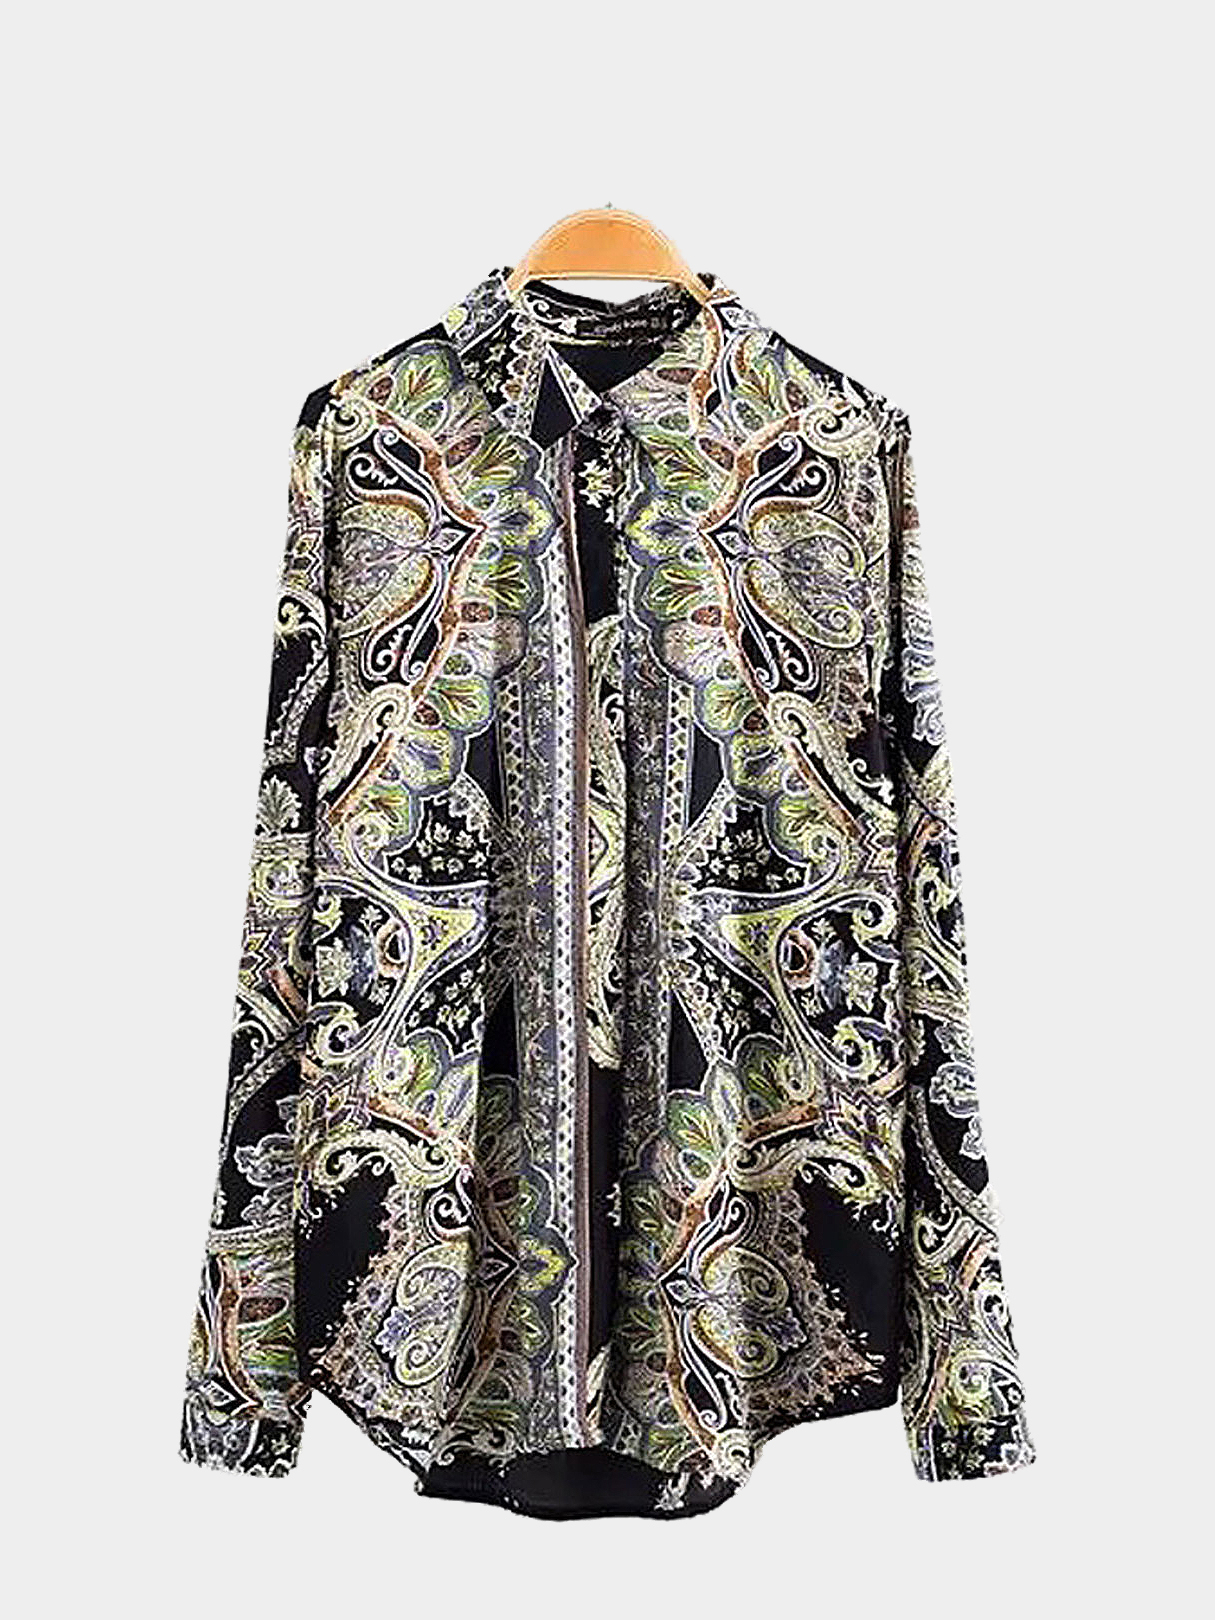 Vintage Printing Long Sleeves Shirt managing projects made simple